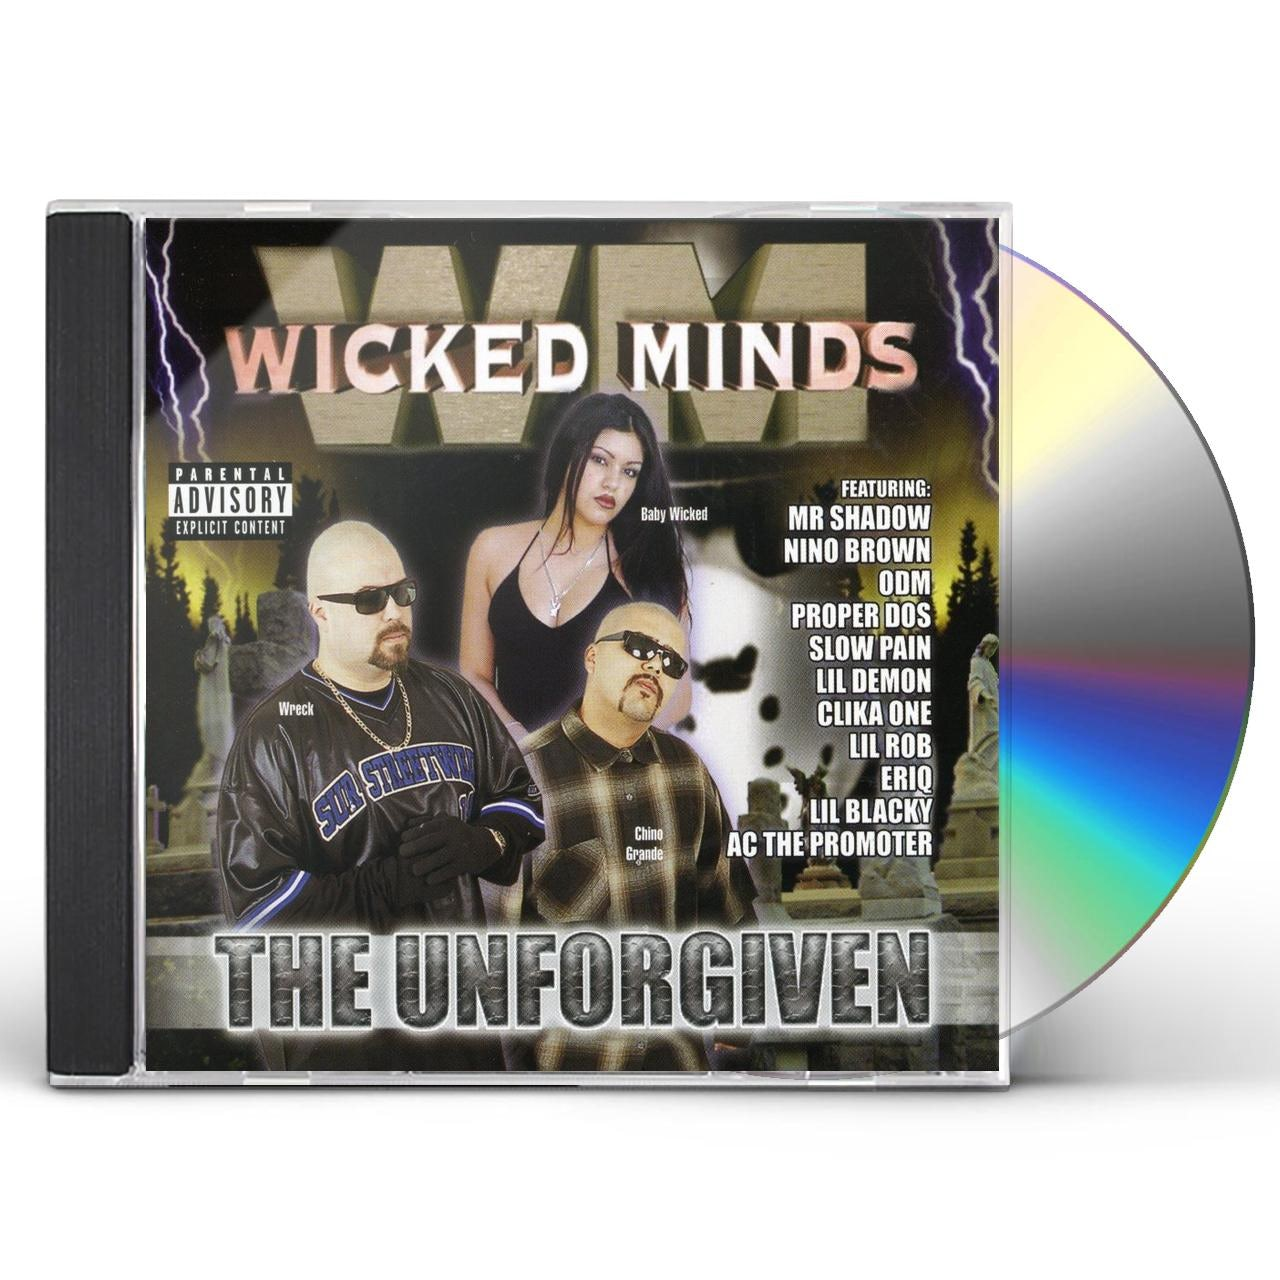 Wicked Minds UNFORGIVEN CD